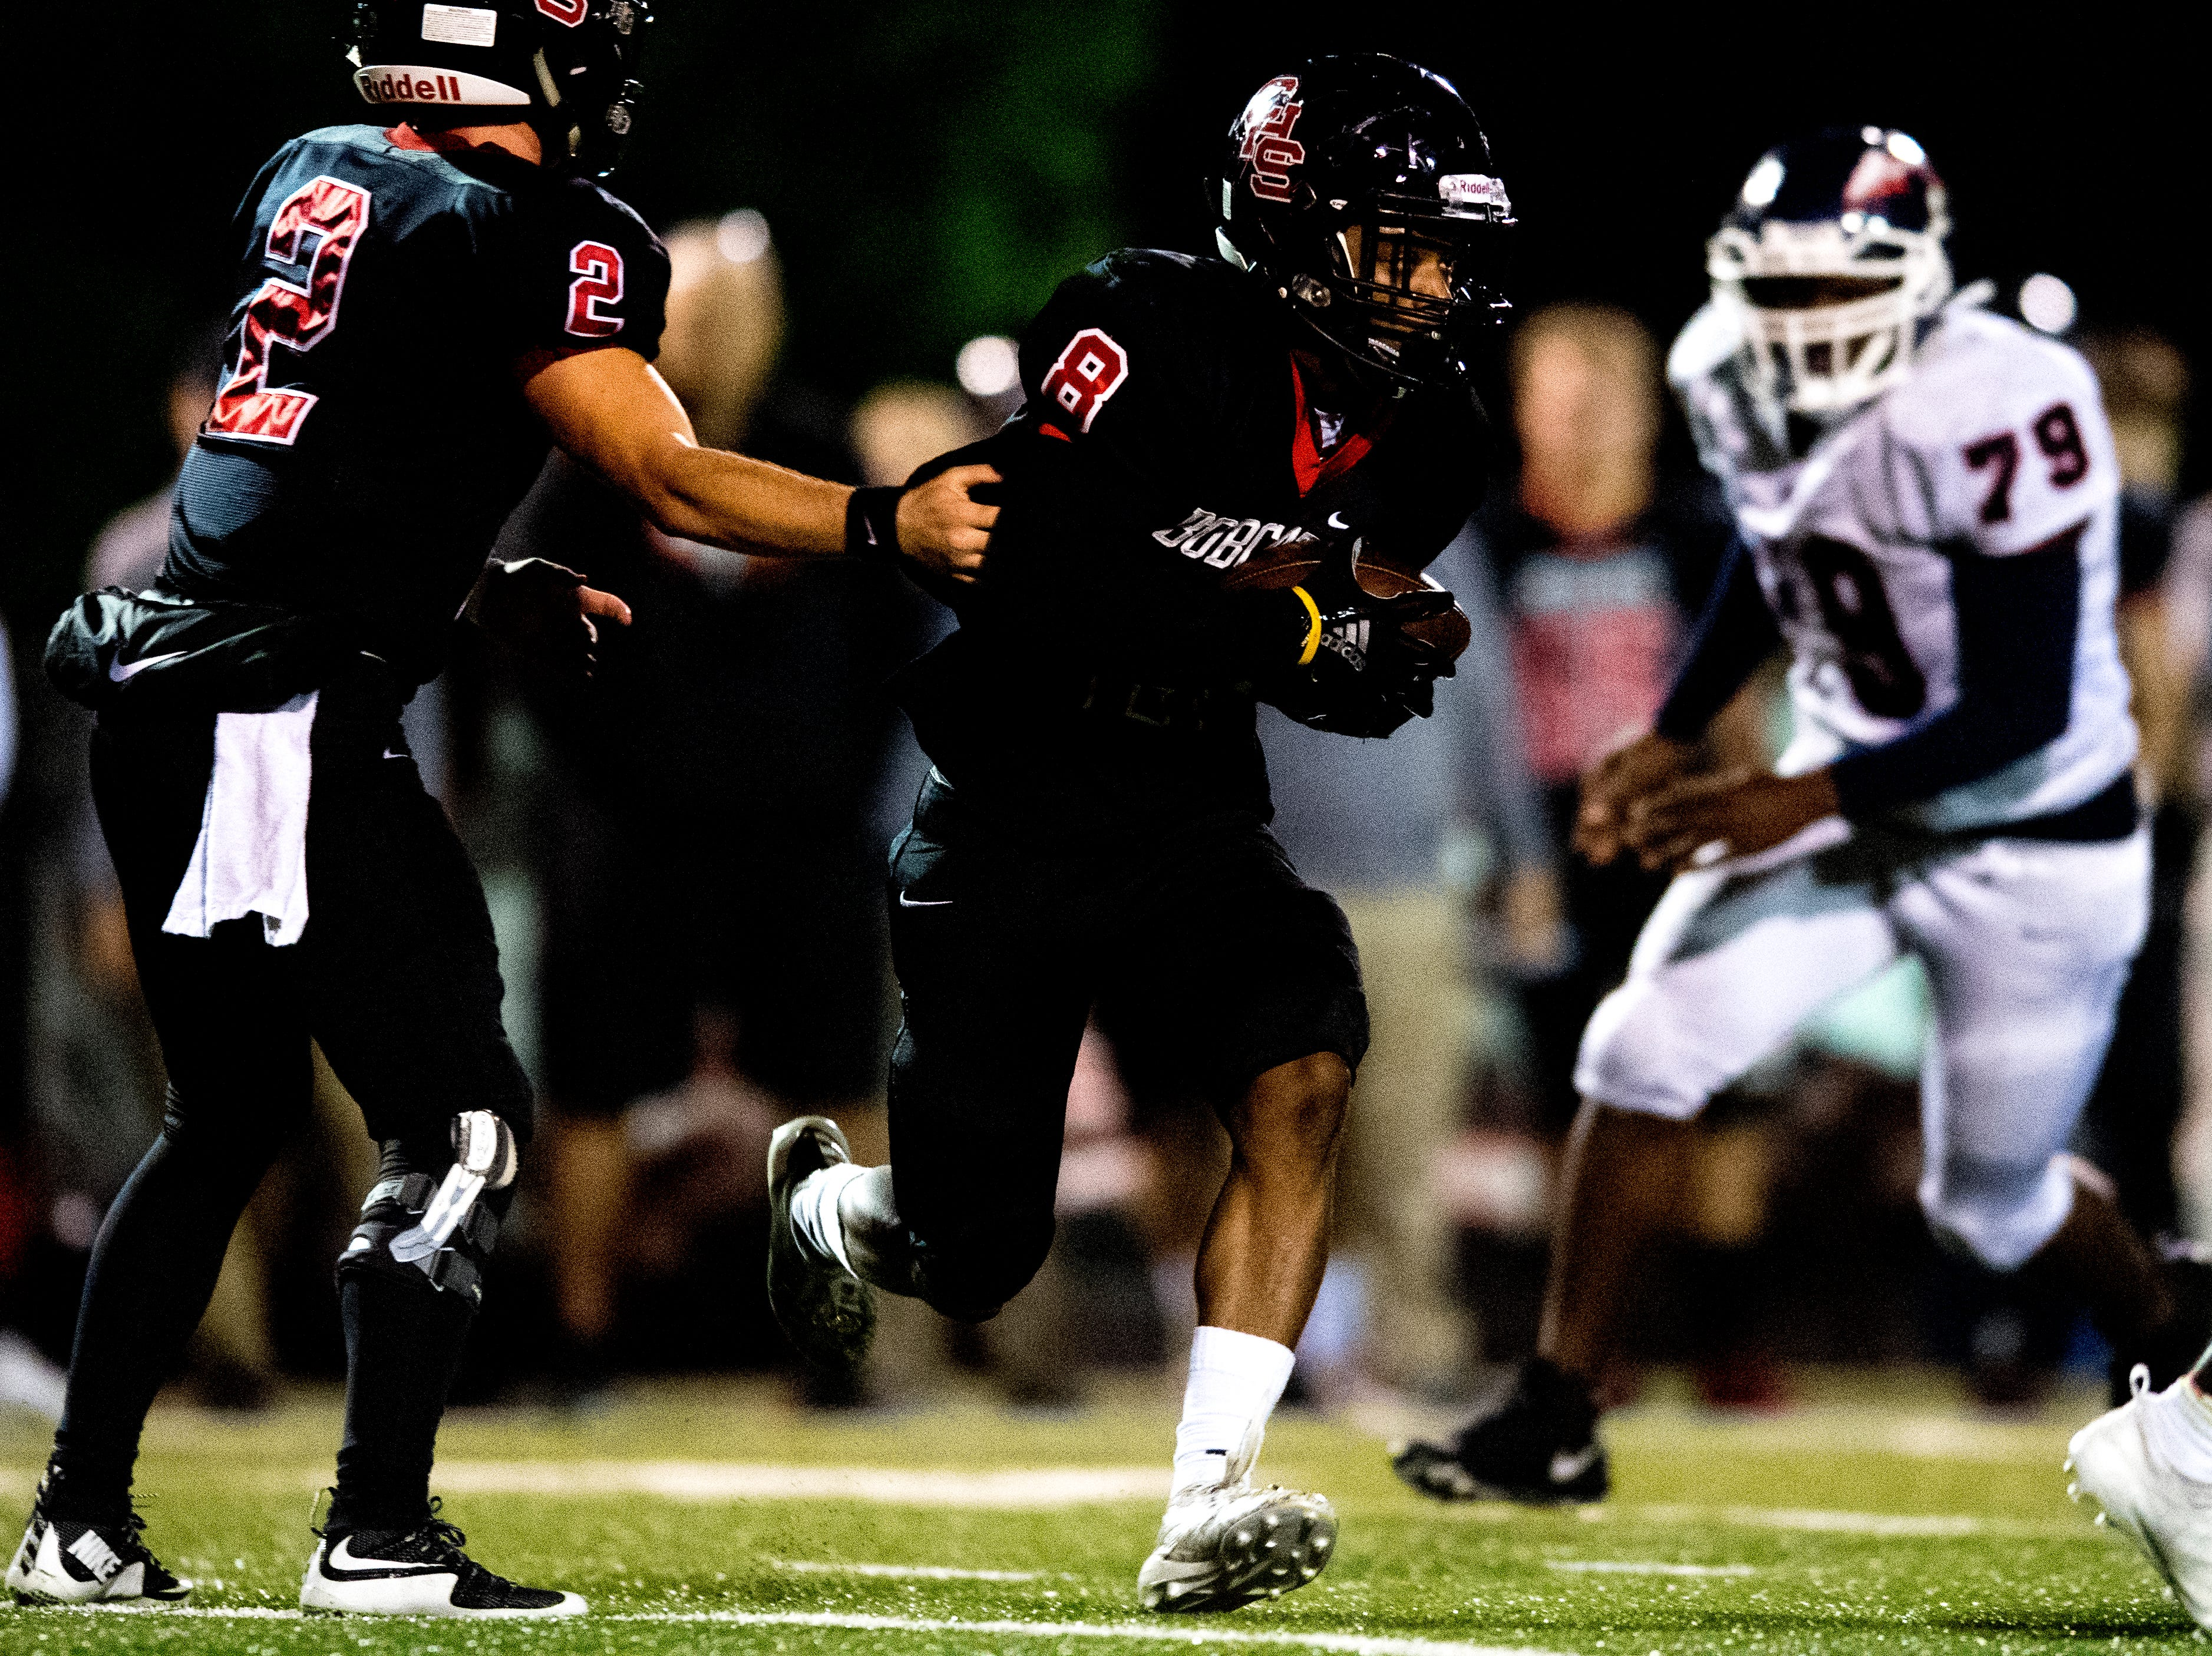 Central's Daunte Holliday (8) is handed the ball by Central's Dakota Fawver (2) during a football game between Central and South-Doyle at Central High School in Knoxville, Tennessee on Friday, October 19, 2018.